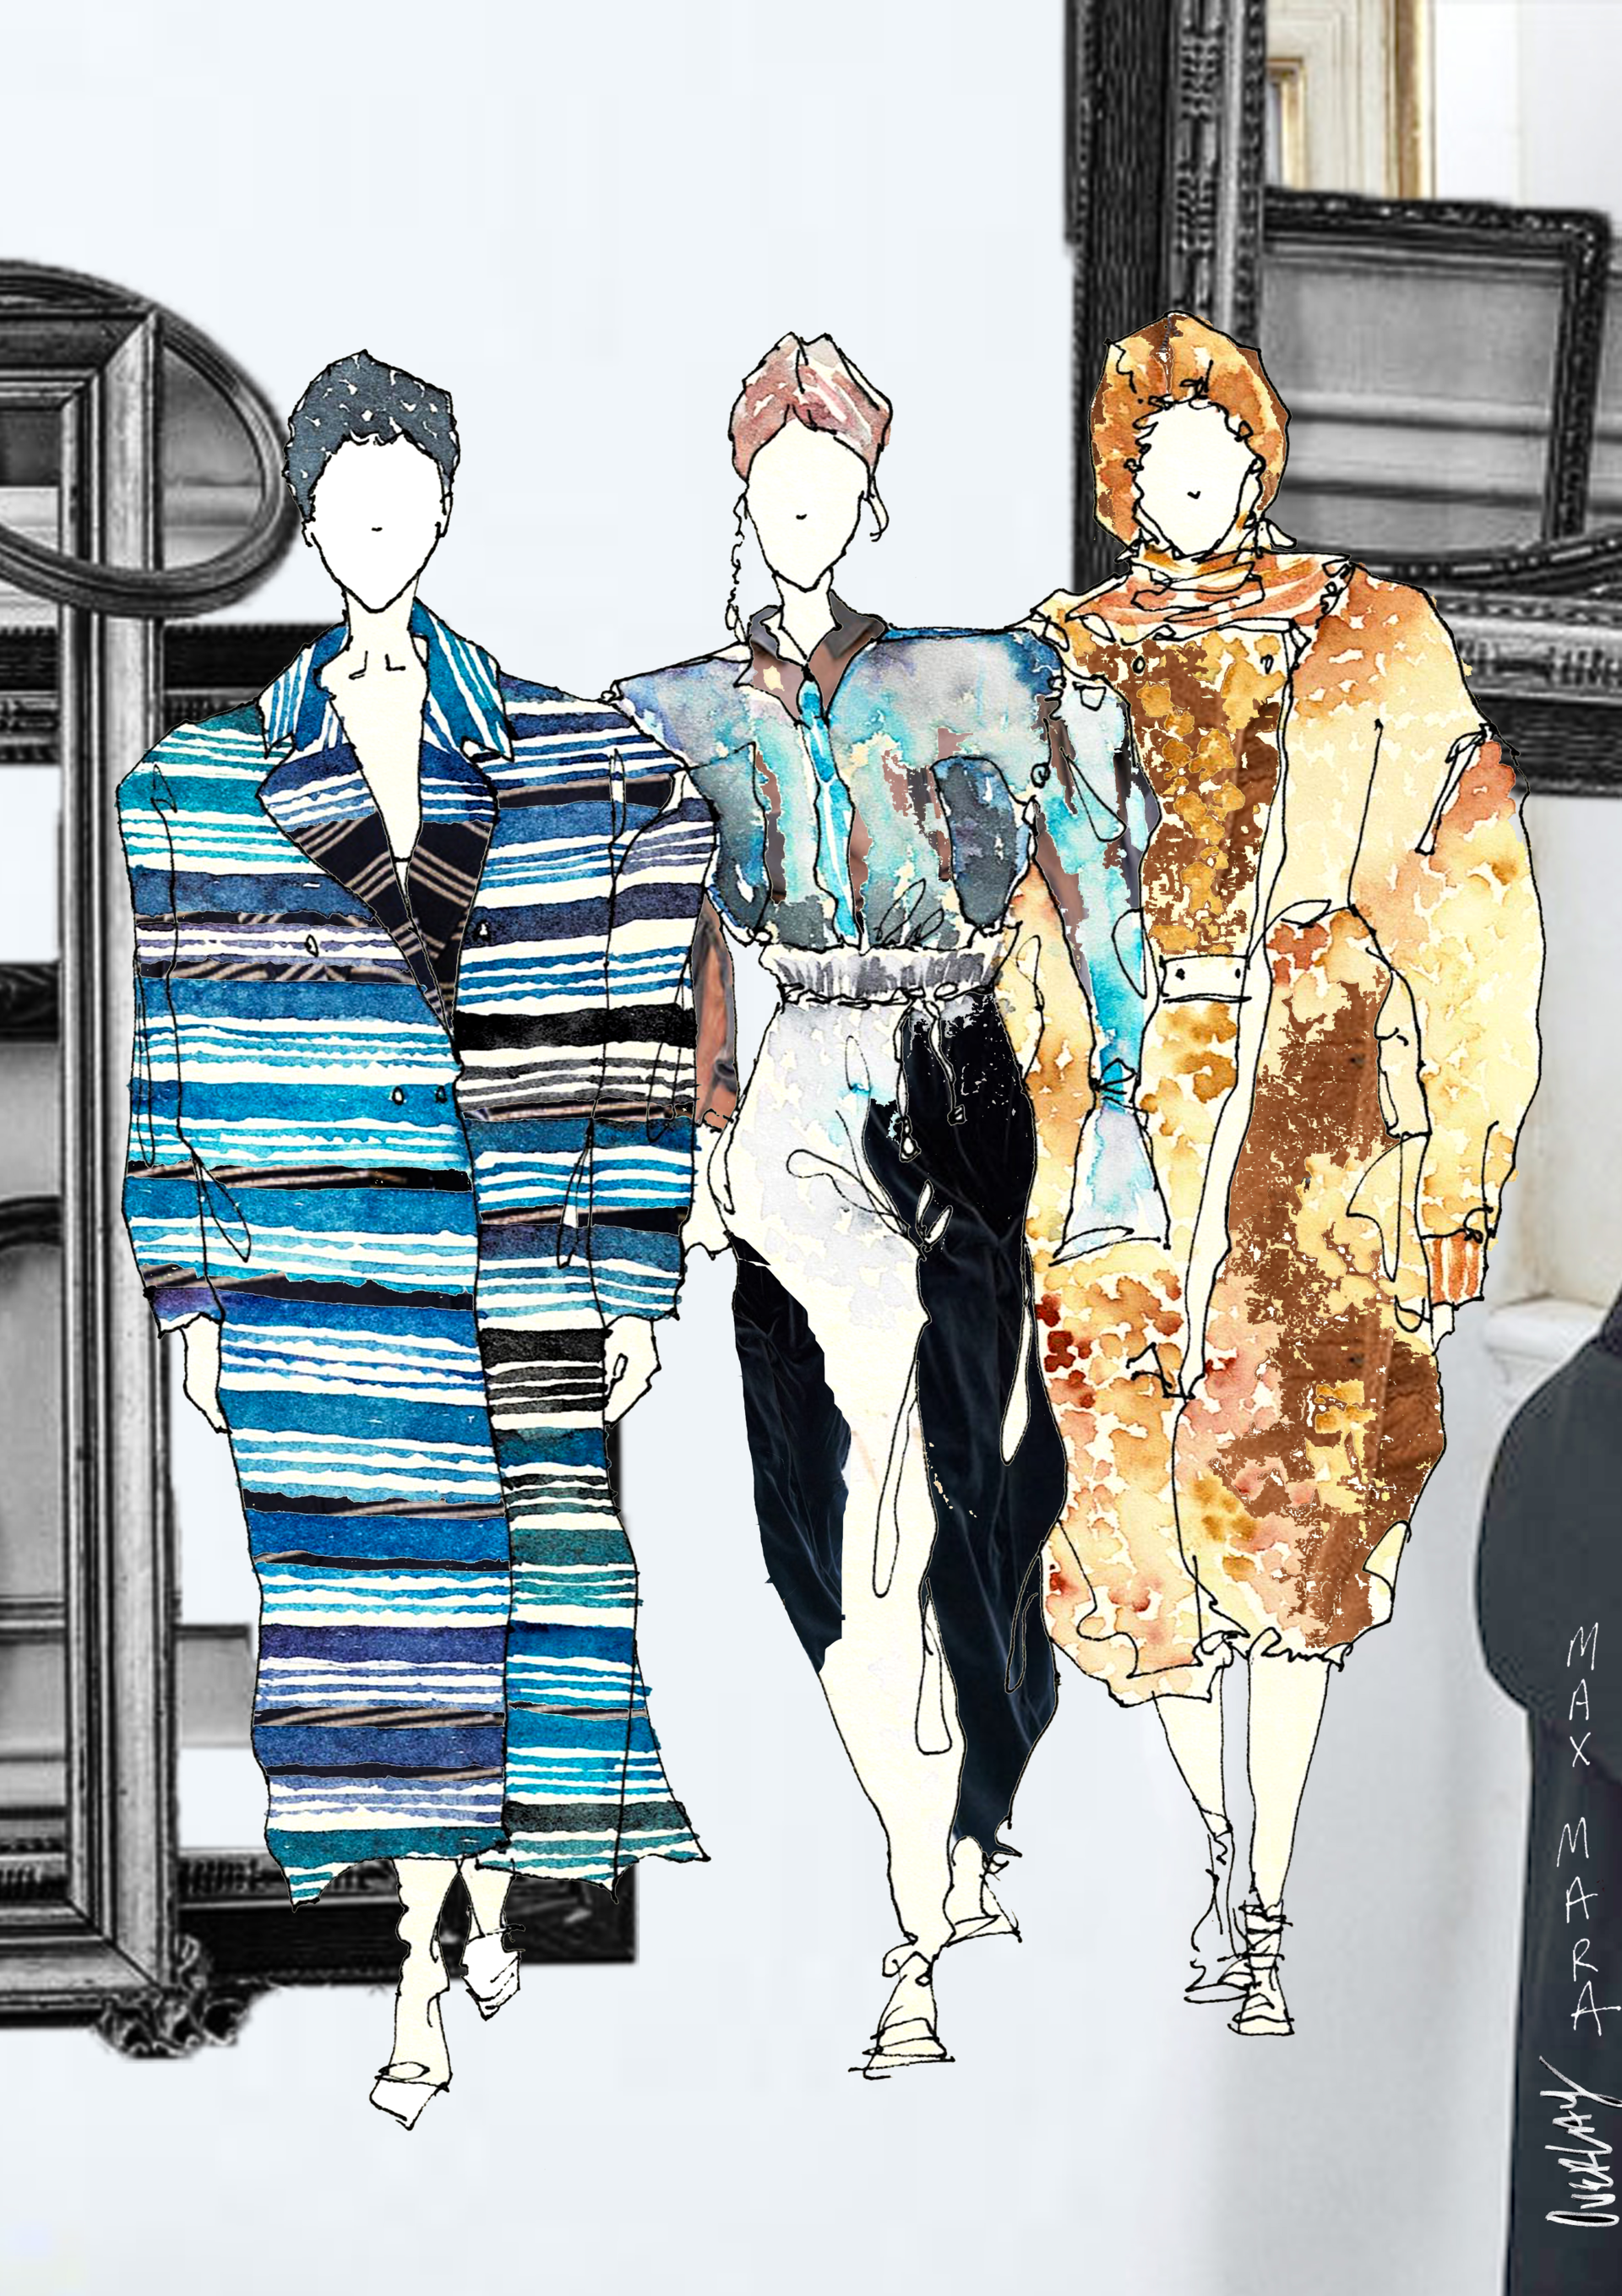 """""""UNTITLED"""" / 594mm x 841mm / ink . watercolor. digital collage /2020 runway collection revisited"""